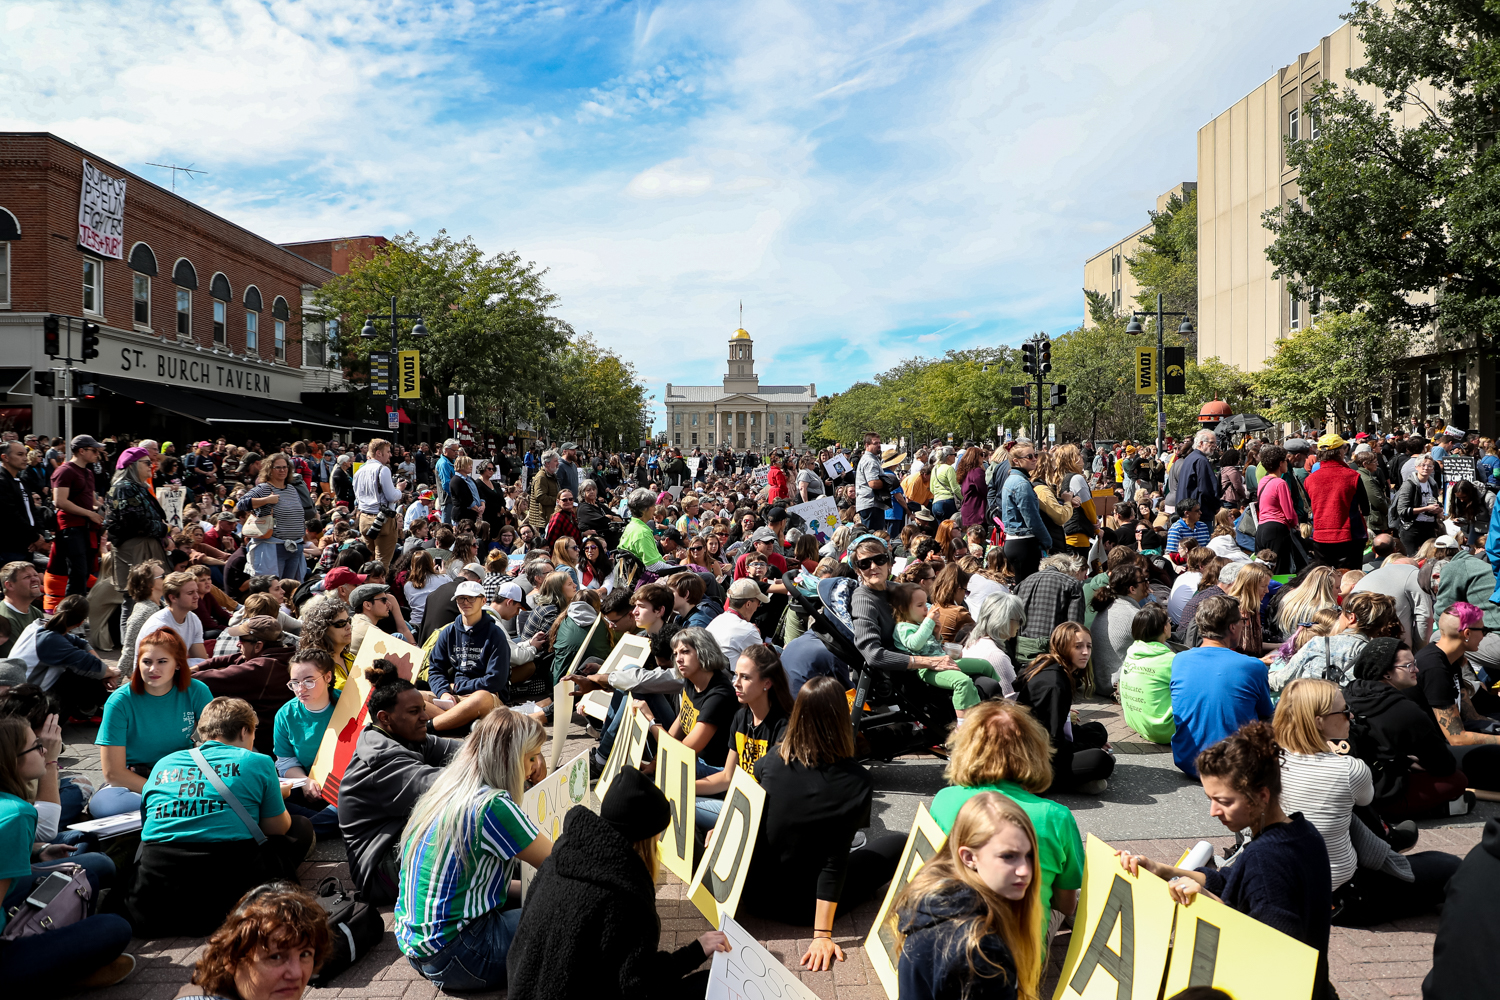 Protesters take part in an 11-minutes sit-down protest during the Iowa City Climate Strike in downtown Iowa City on Friday, Oct. 4, 2019.